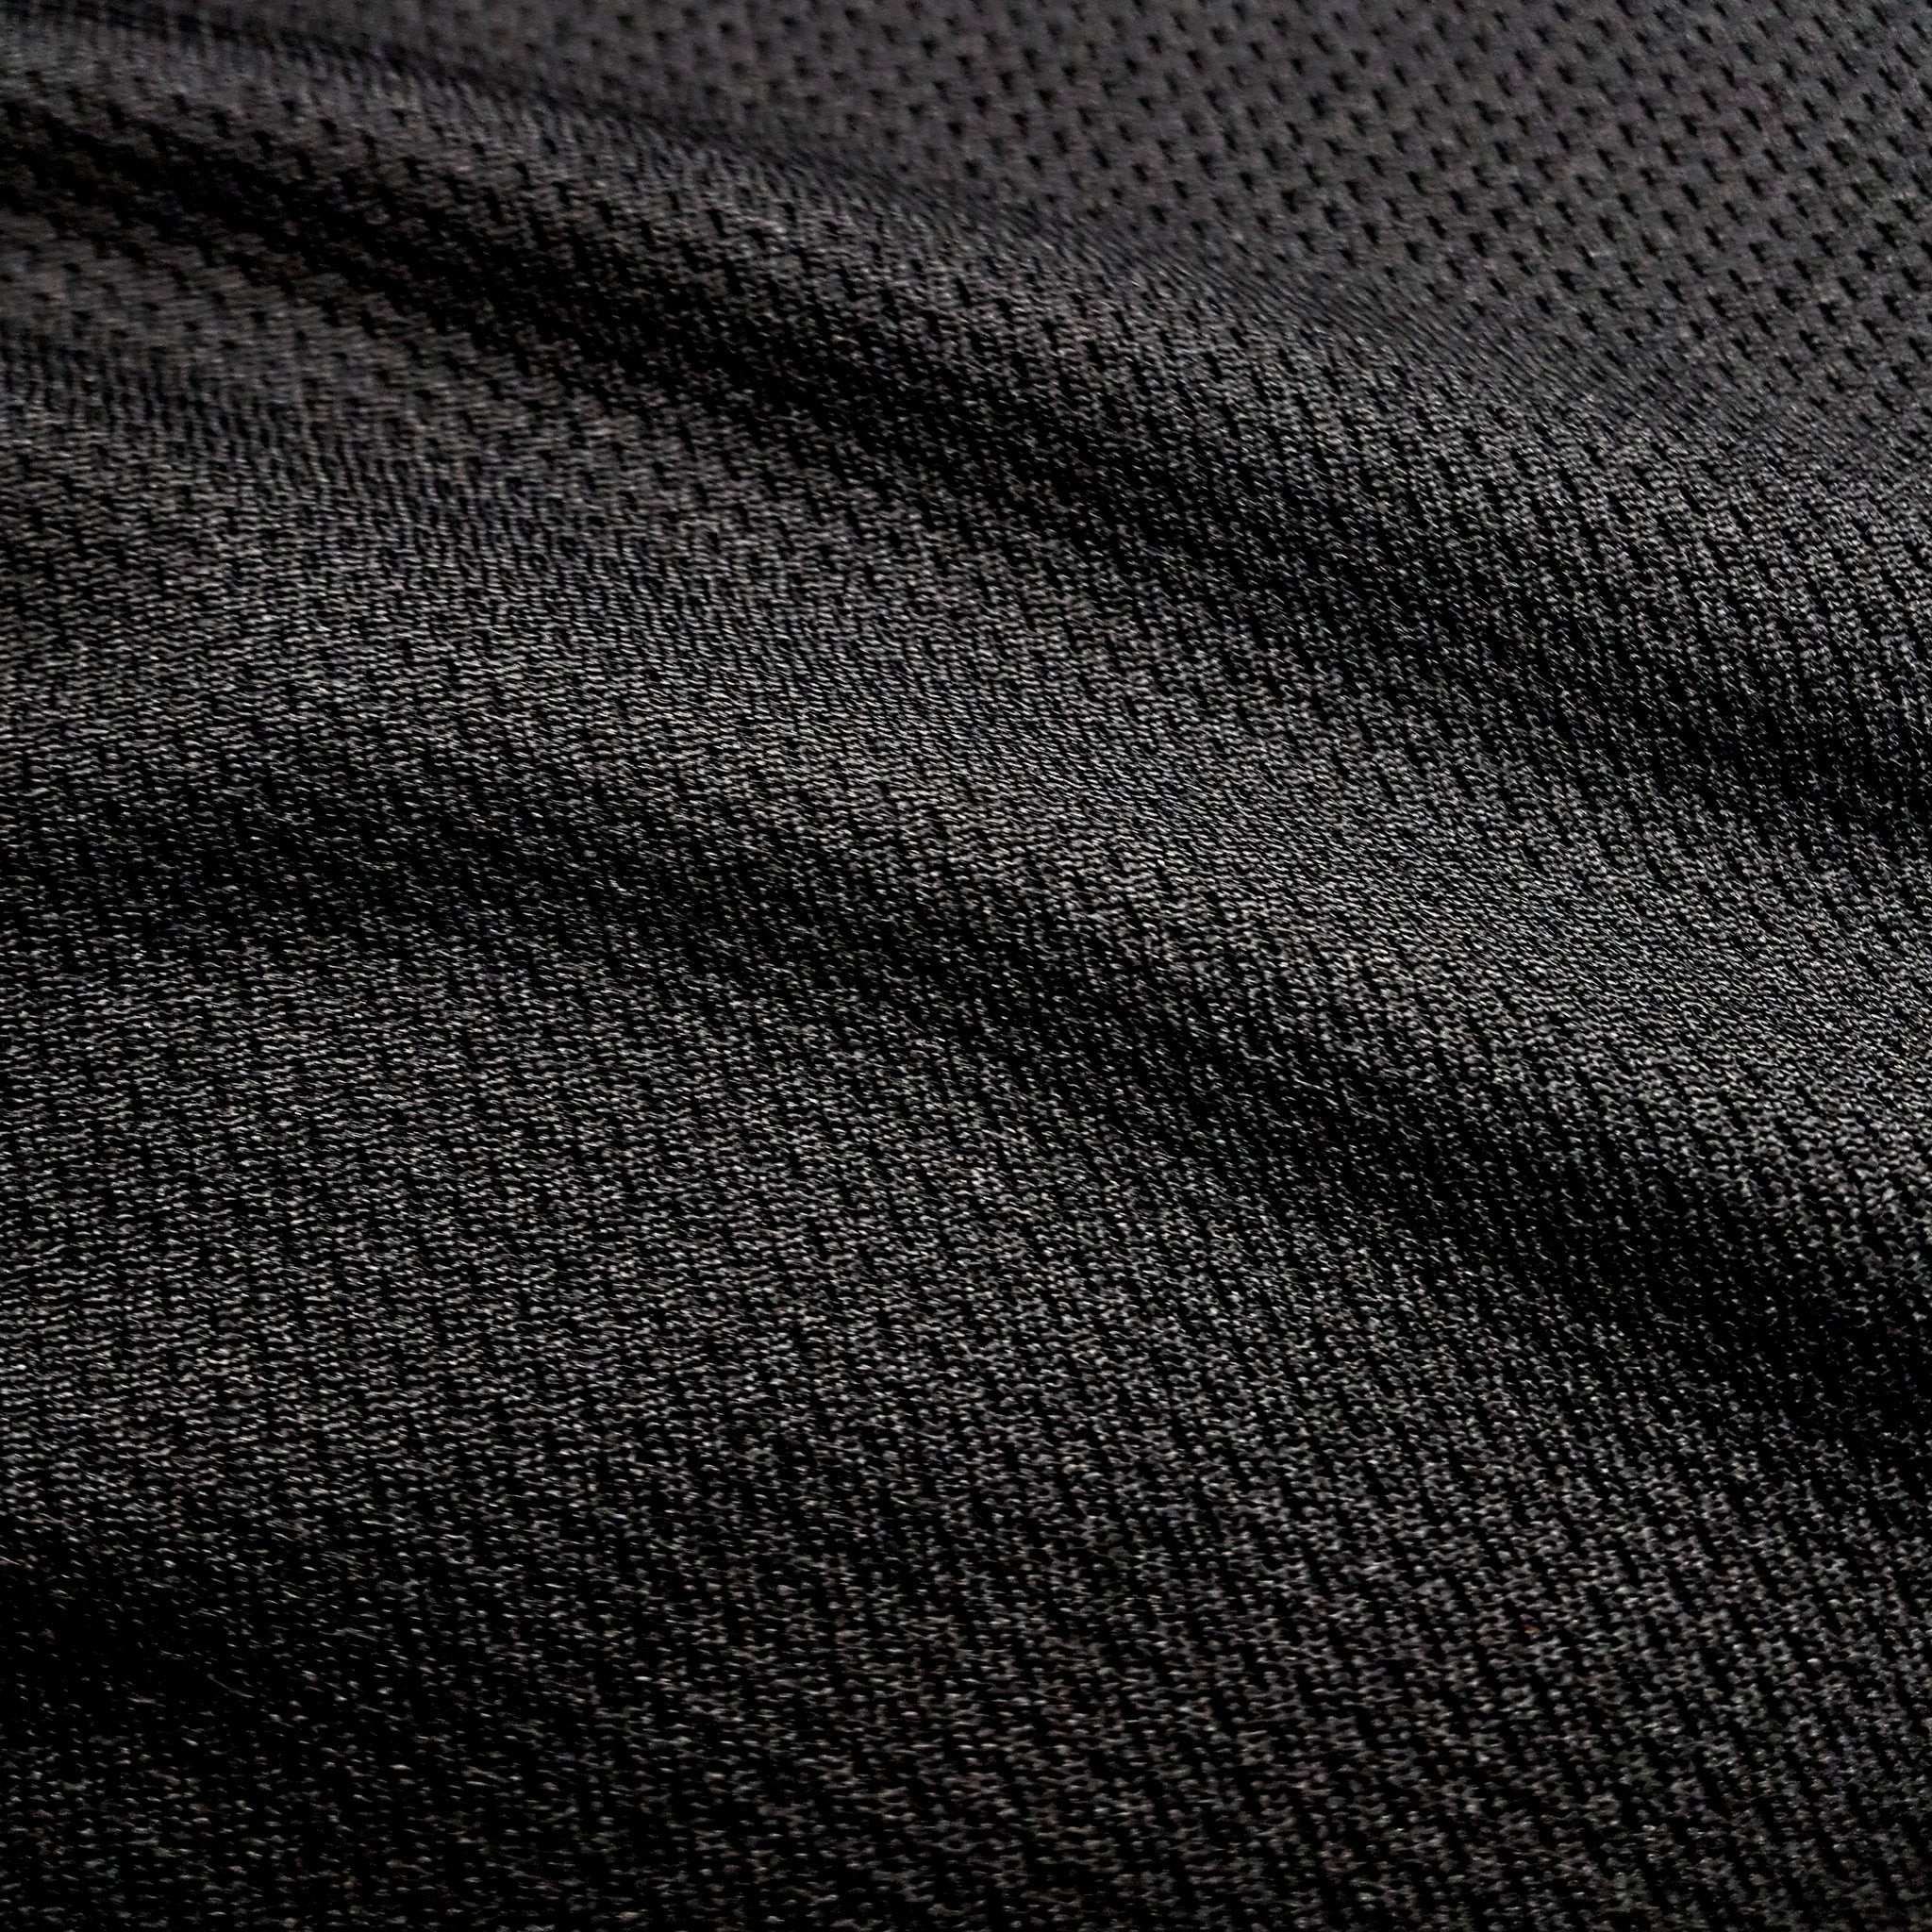 SportyFish Black Series black t-shirt: Wels Catfish close-up view 4